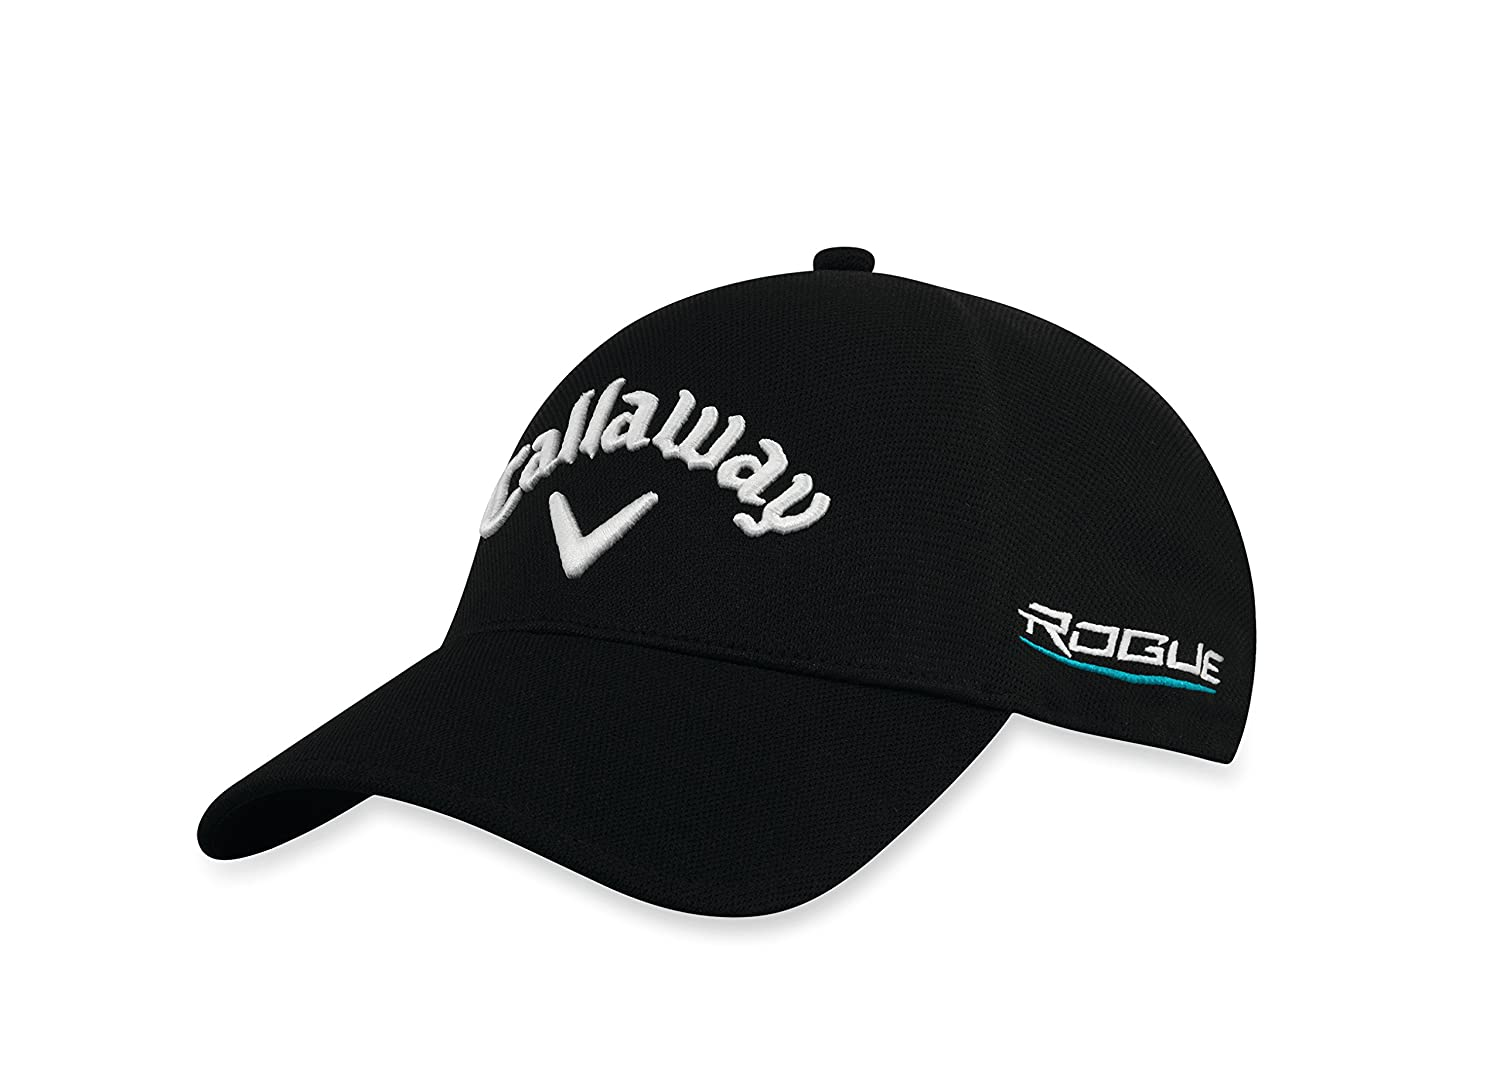 Amazon.com  Callaway Golf 2018 Tour Authentic Fitted Hat  Sports   Outdoors e4cce83d46f